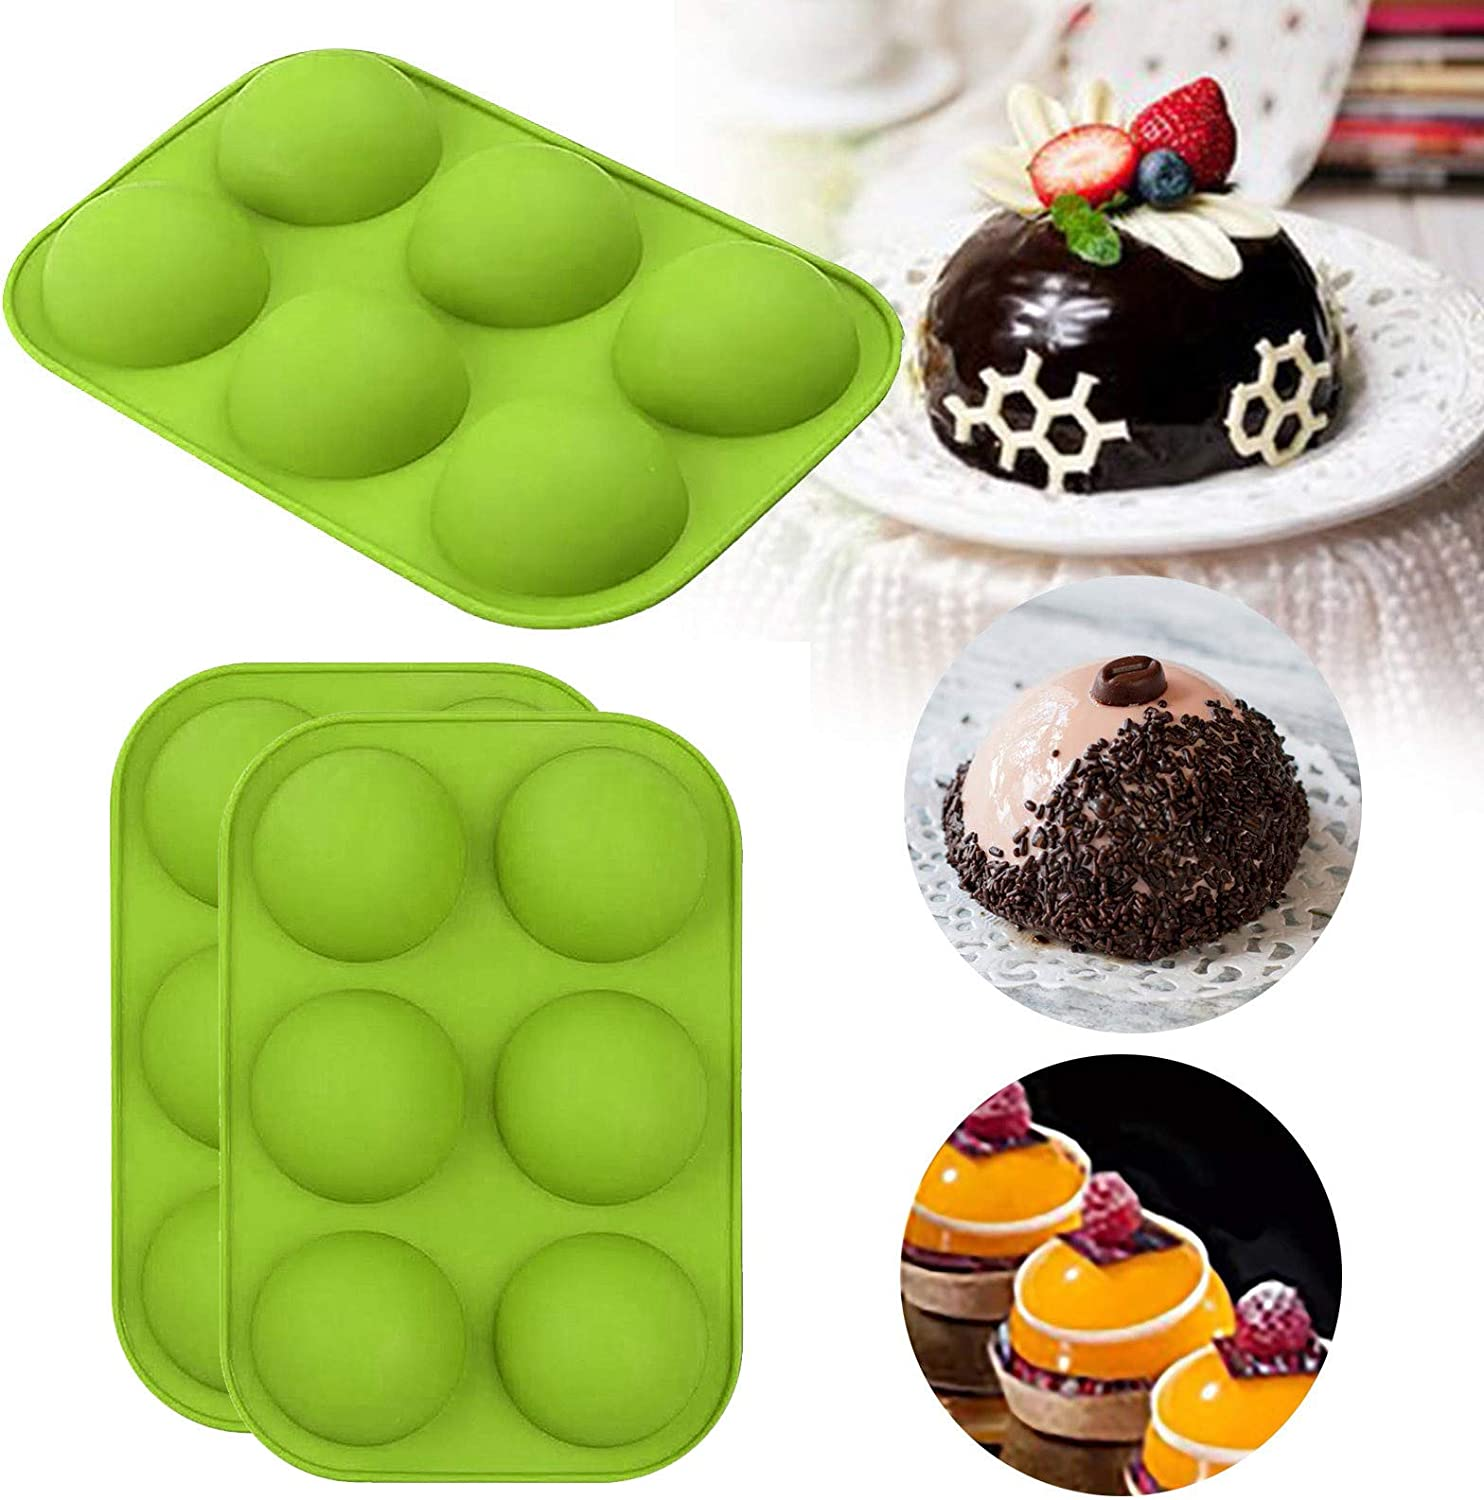 BPA Free Cupcake Baking Pan Non Stick Round Shape Half Sphere Mold Baking Mold for Making Hot Chocolate Bomb,Cake Black, 2Pcs Jelly 6 Holes Silicone Mold for Chocolate Pudding